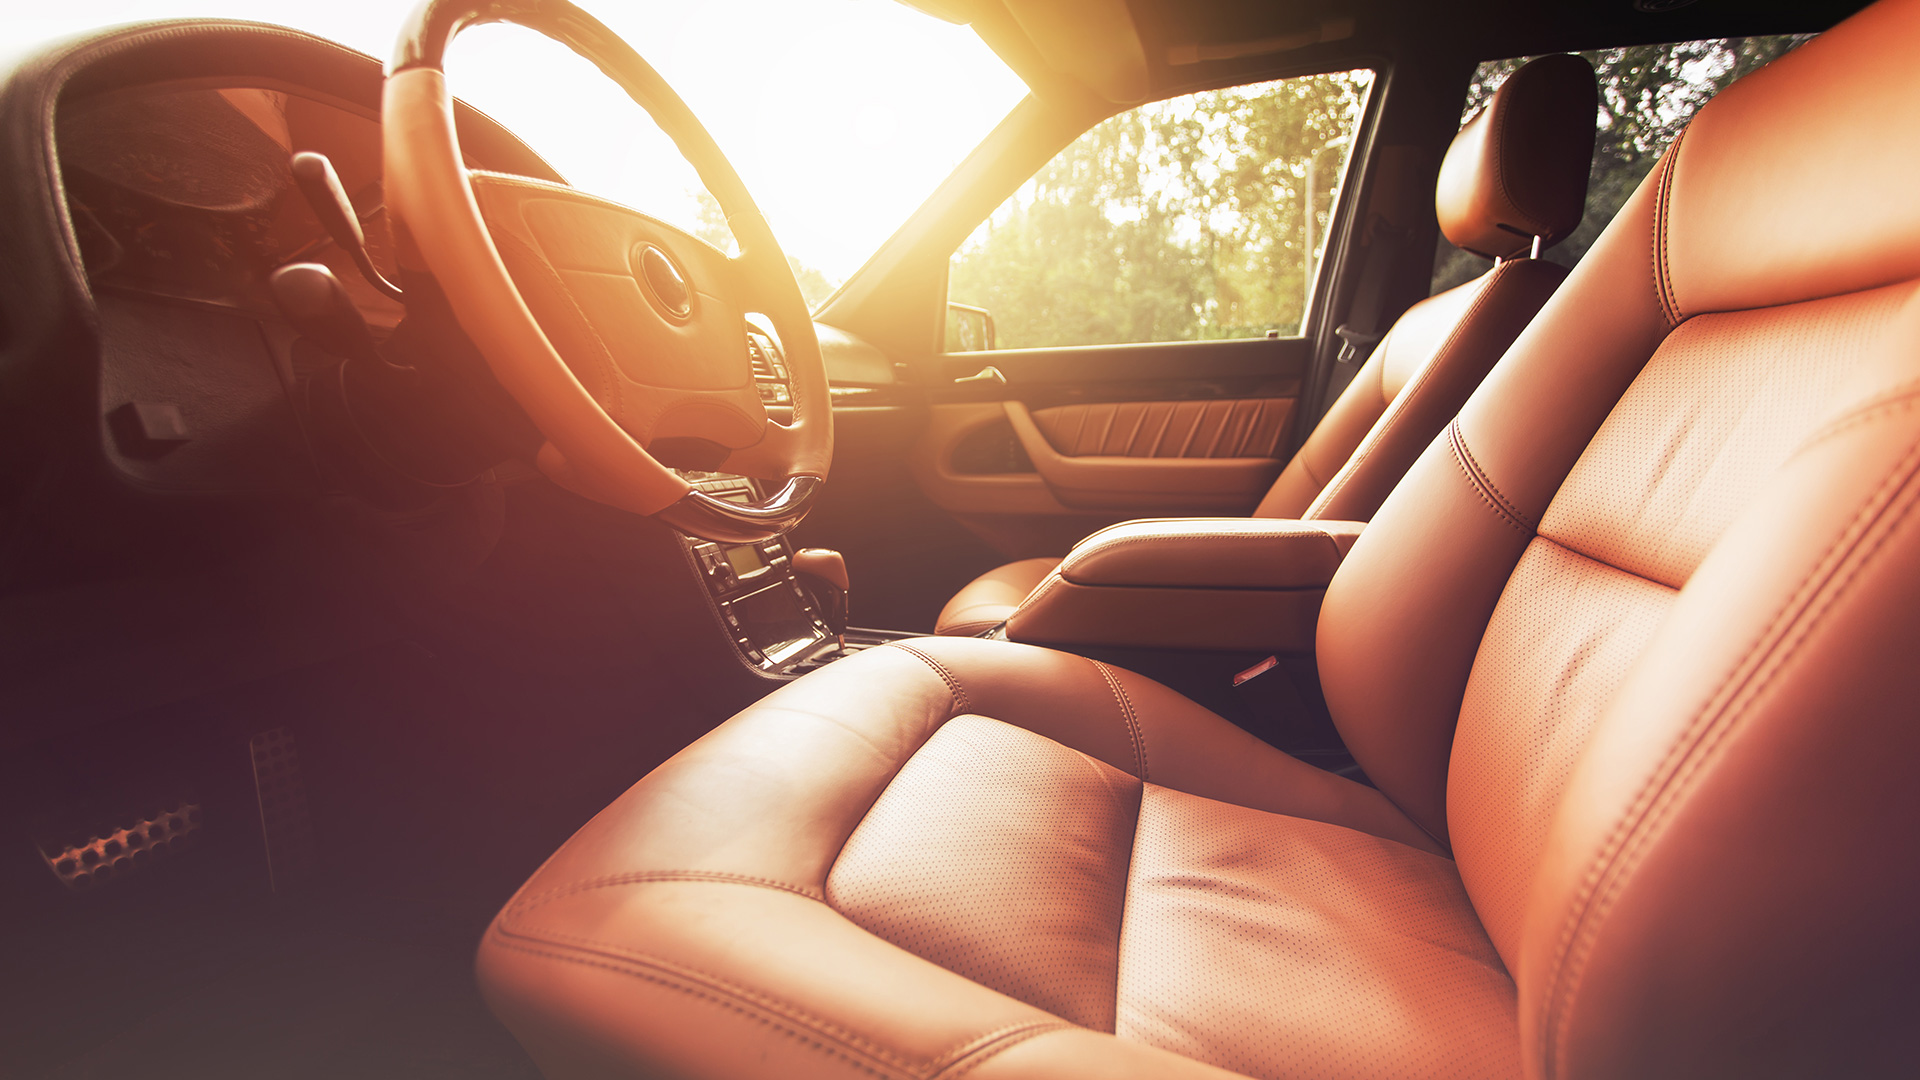 Interior of leather seats